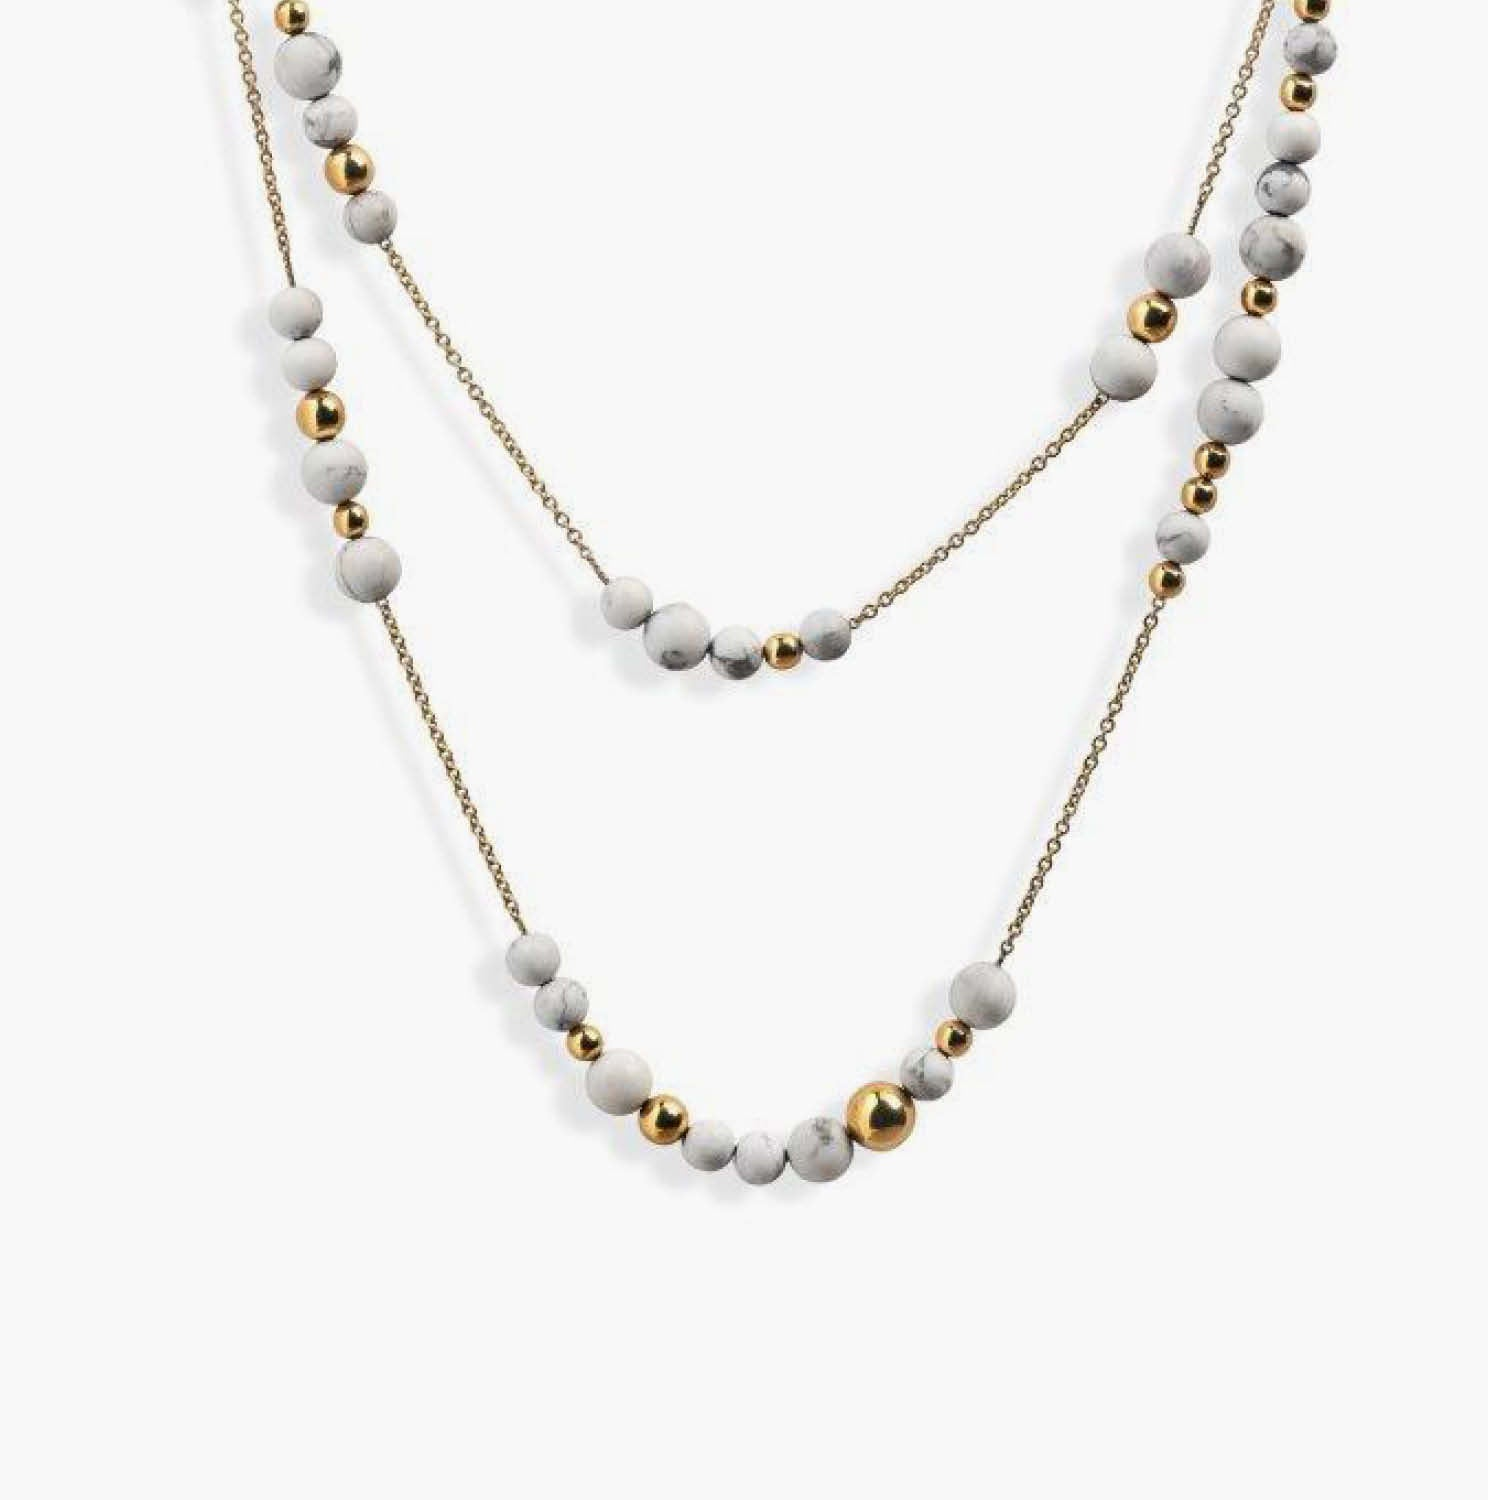 Constellation Collection Necklace with Howlite